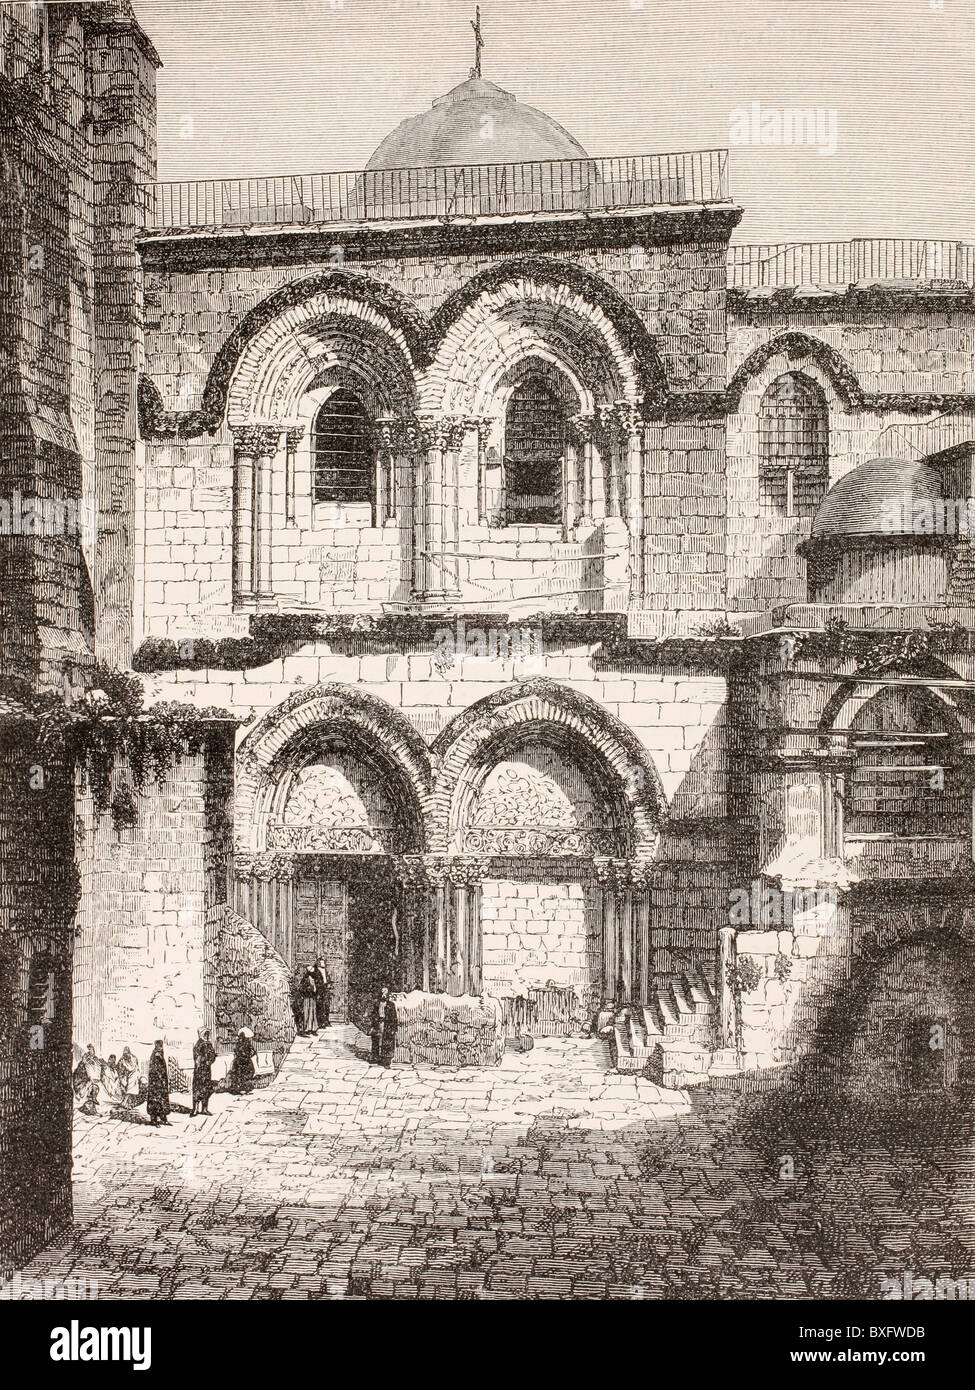 Jerusalem, Palestine. Church of the Holy Sepulchre in the 19th century. - Stock Image